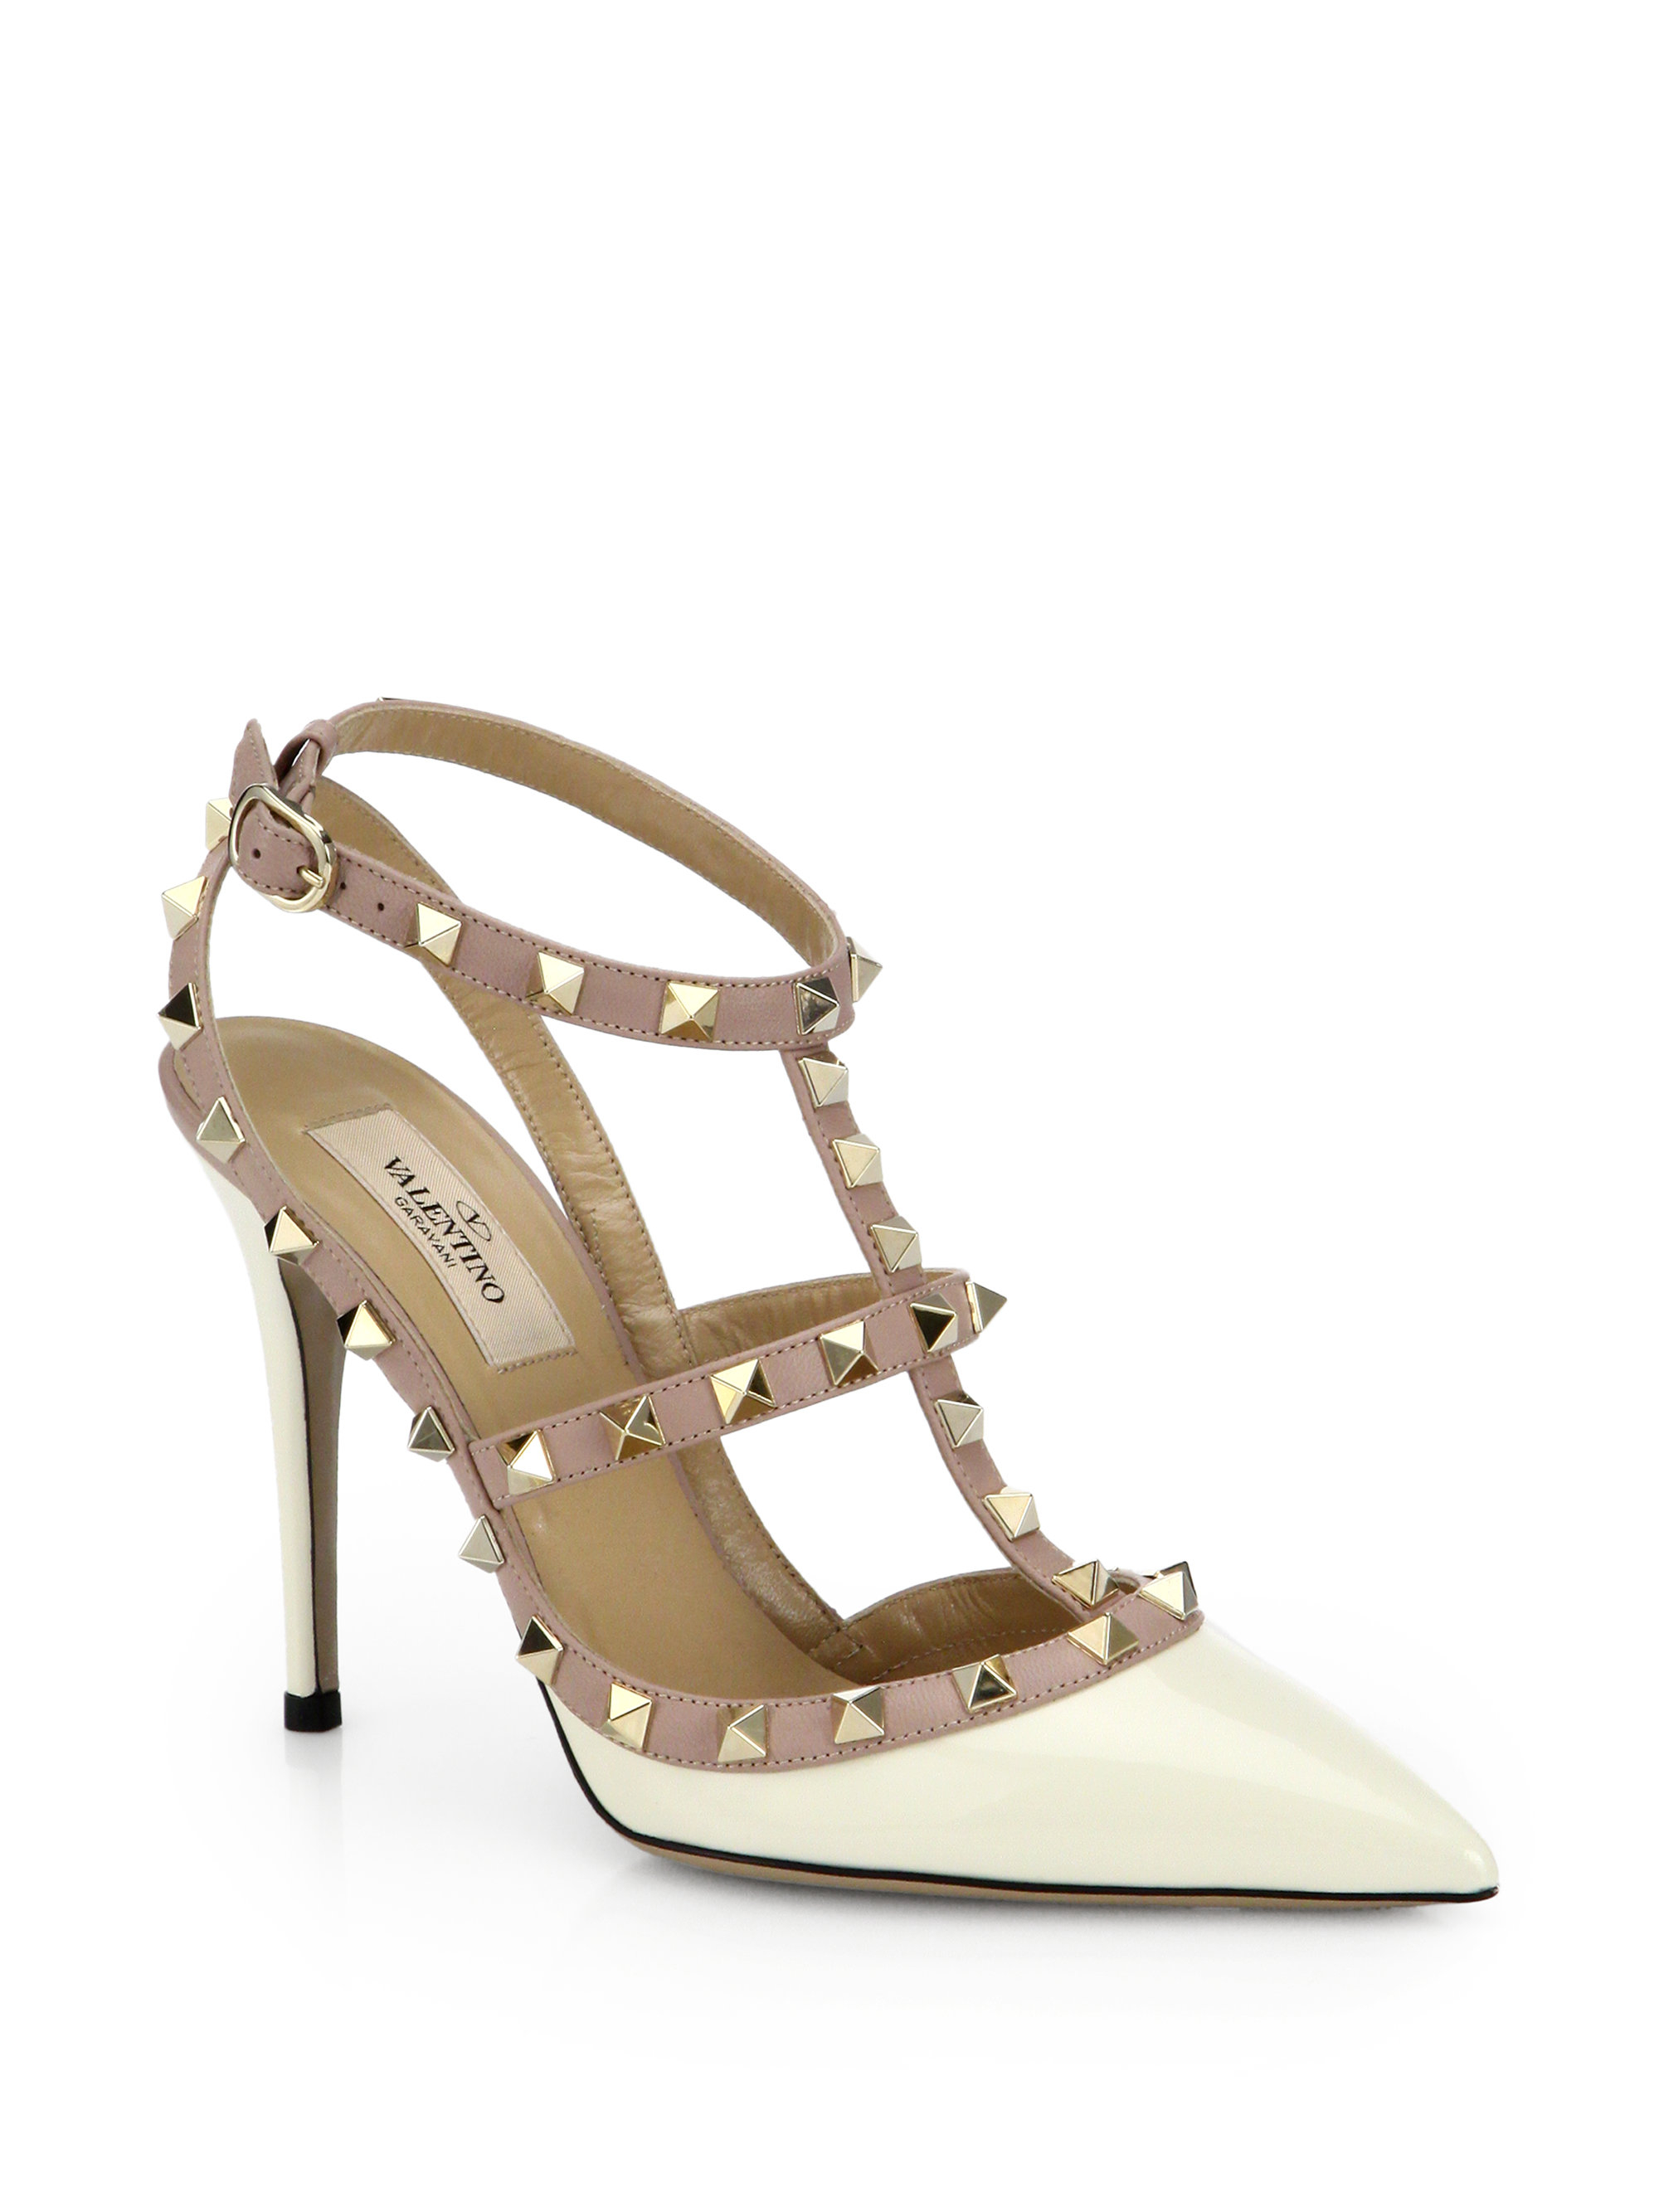 valentino patent leather rockstud pumps in white ivory lyst. Black Bedroom Furniture Sets. Home Design Ideas